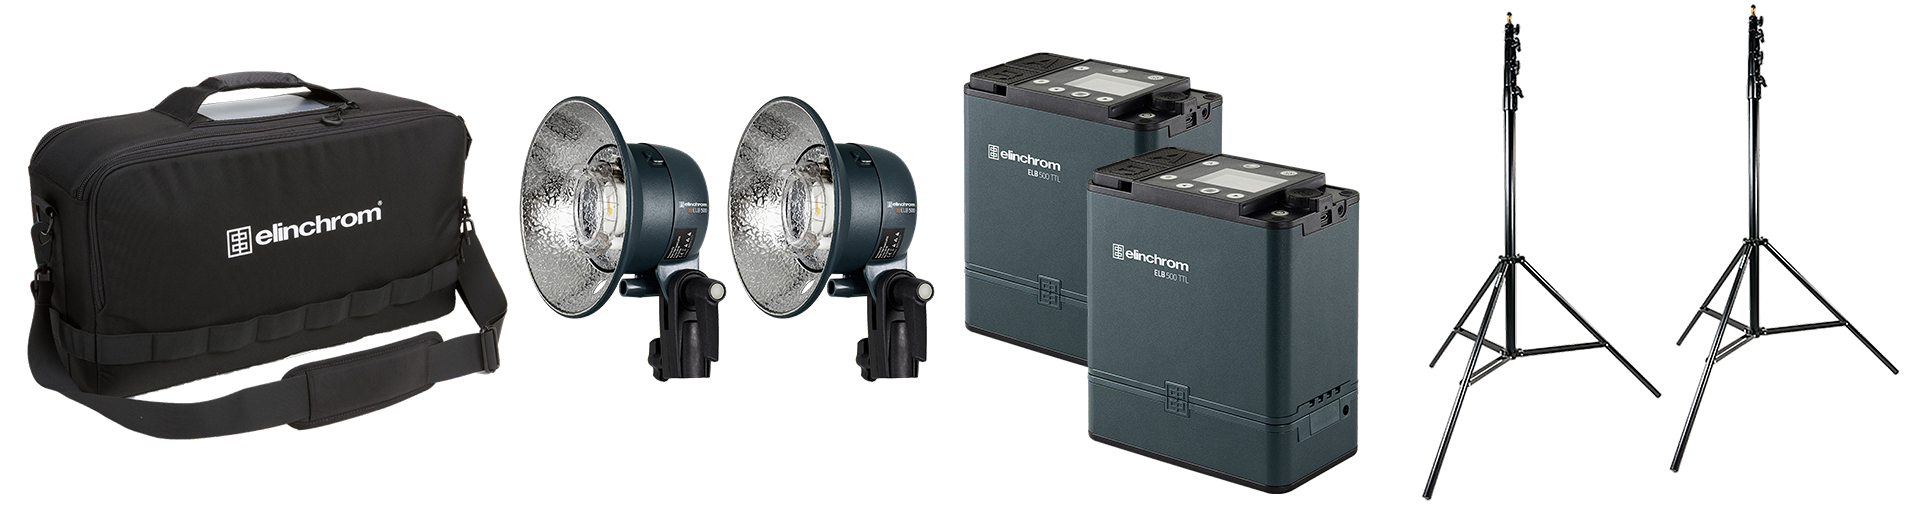 Elinchrom lighting hire